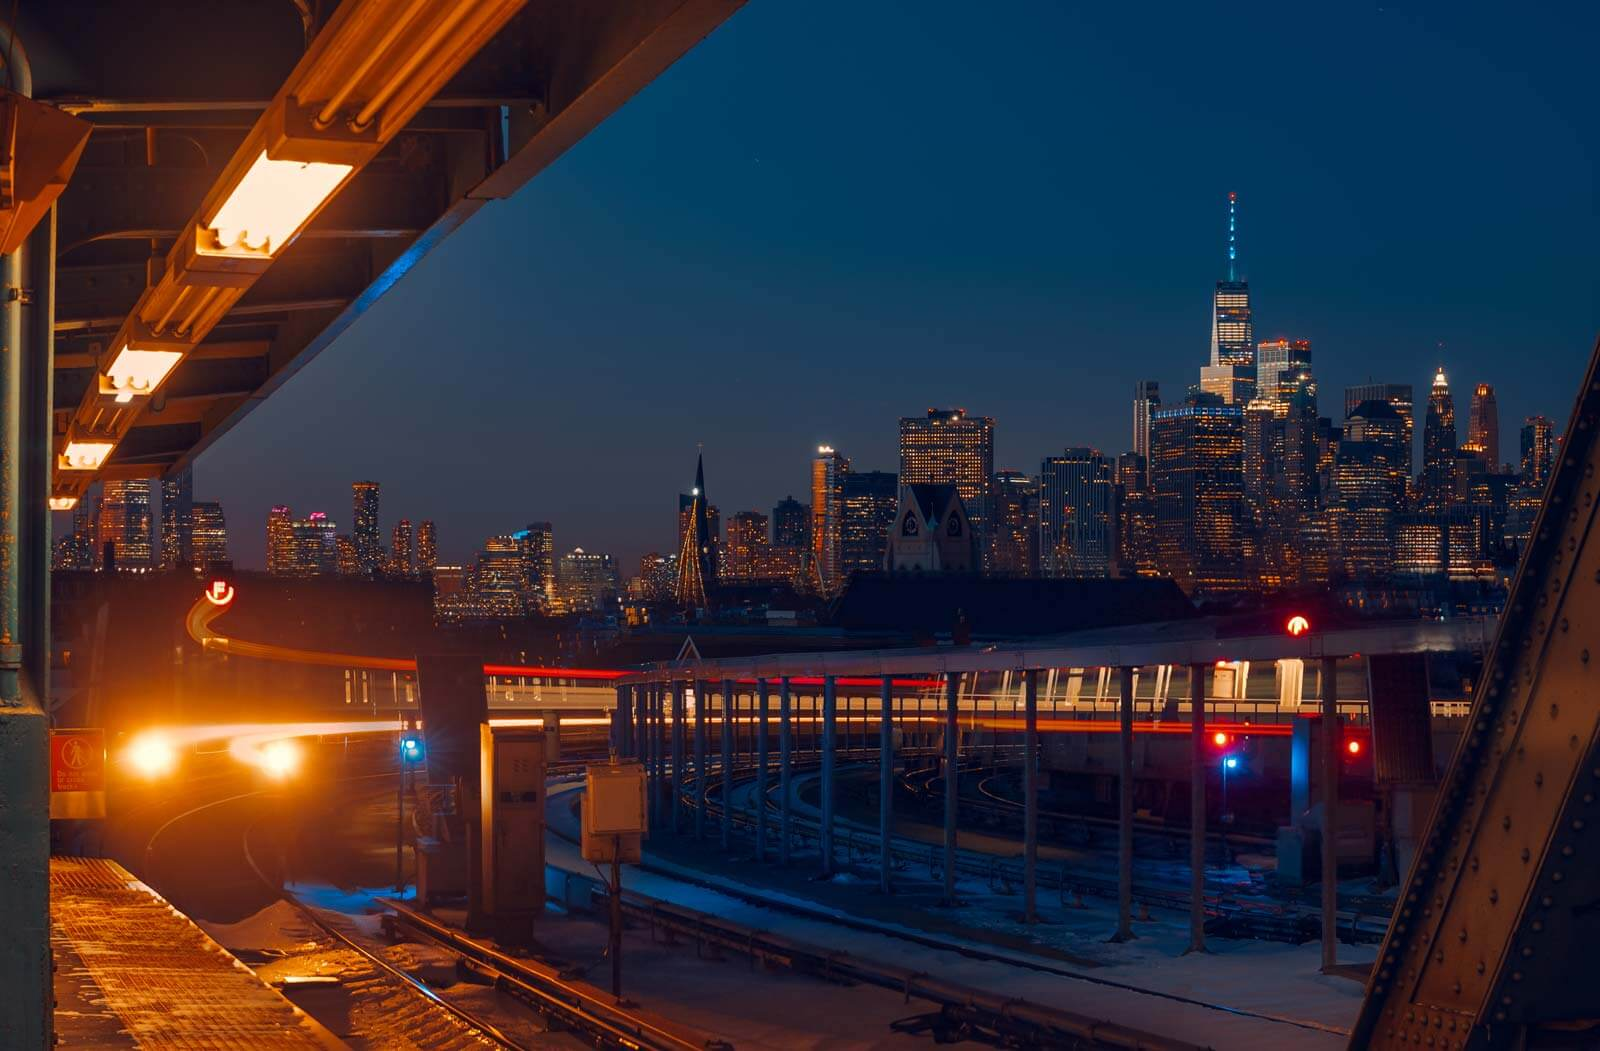 F Train Arriving at Smith and 9th Station with Brooklyn and Manhattan Skyline in Distance